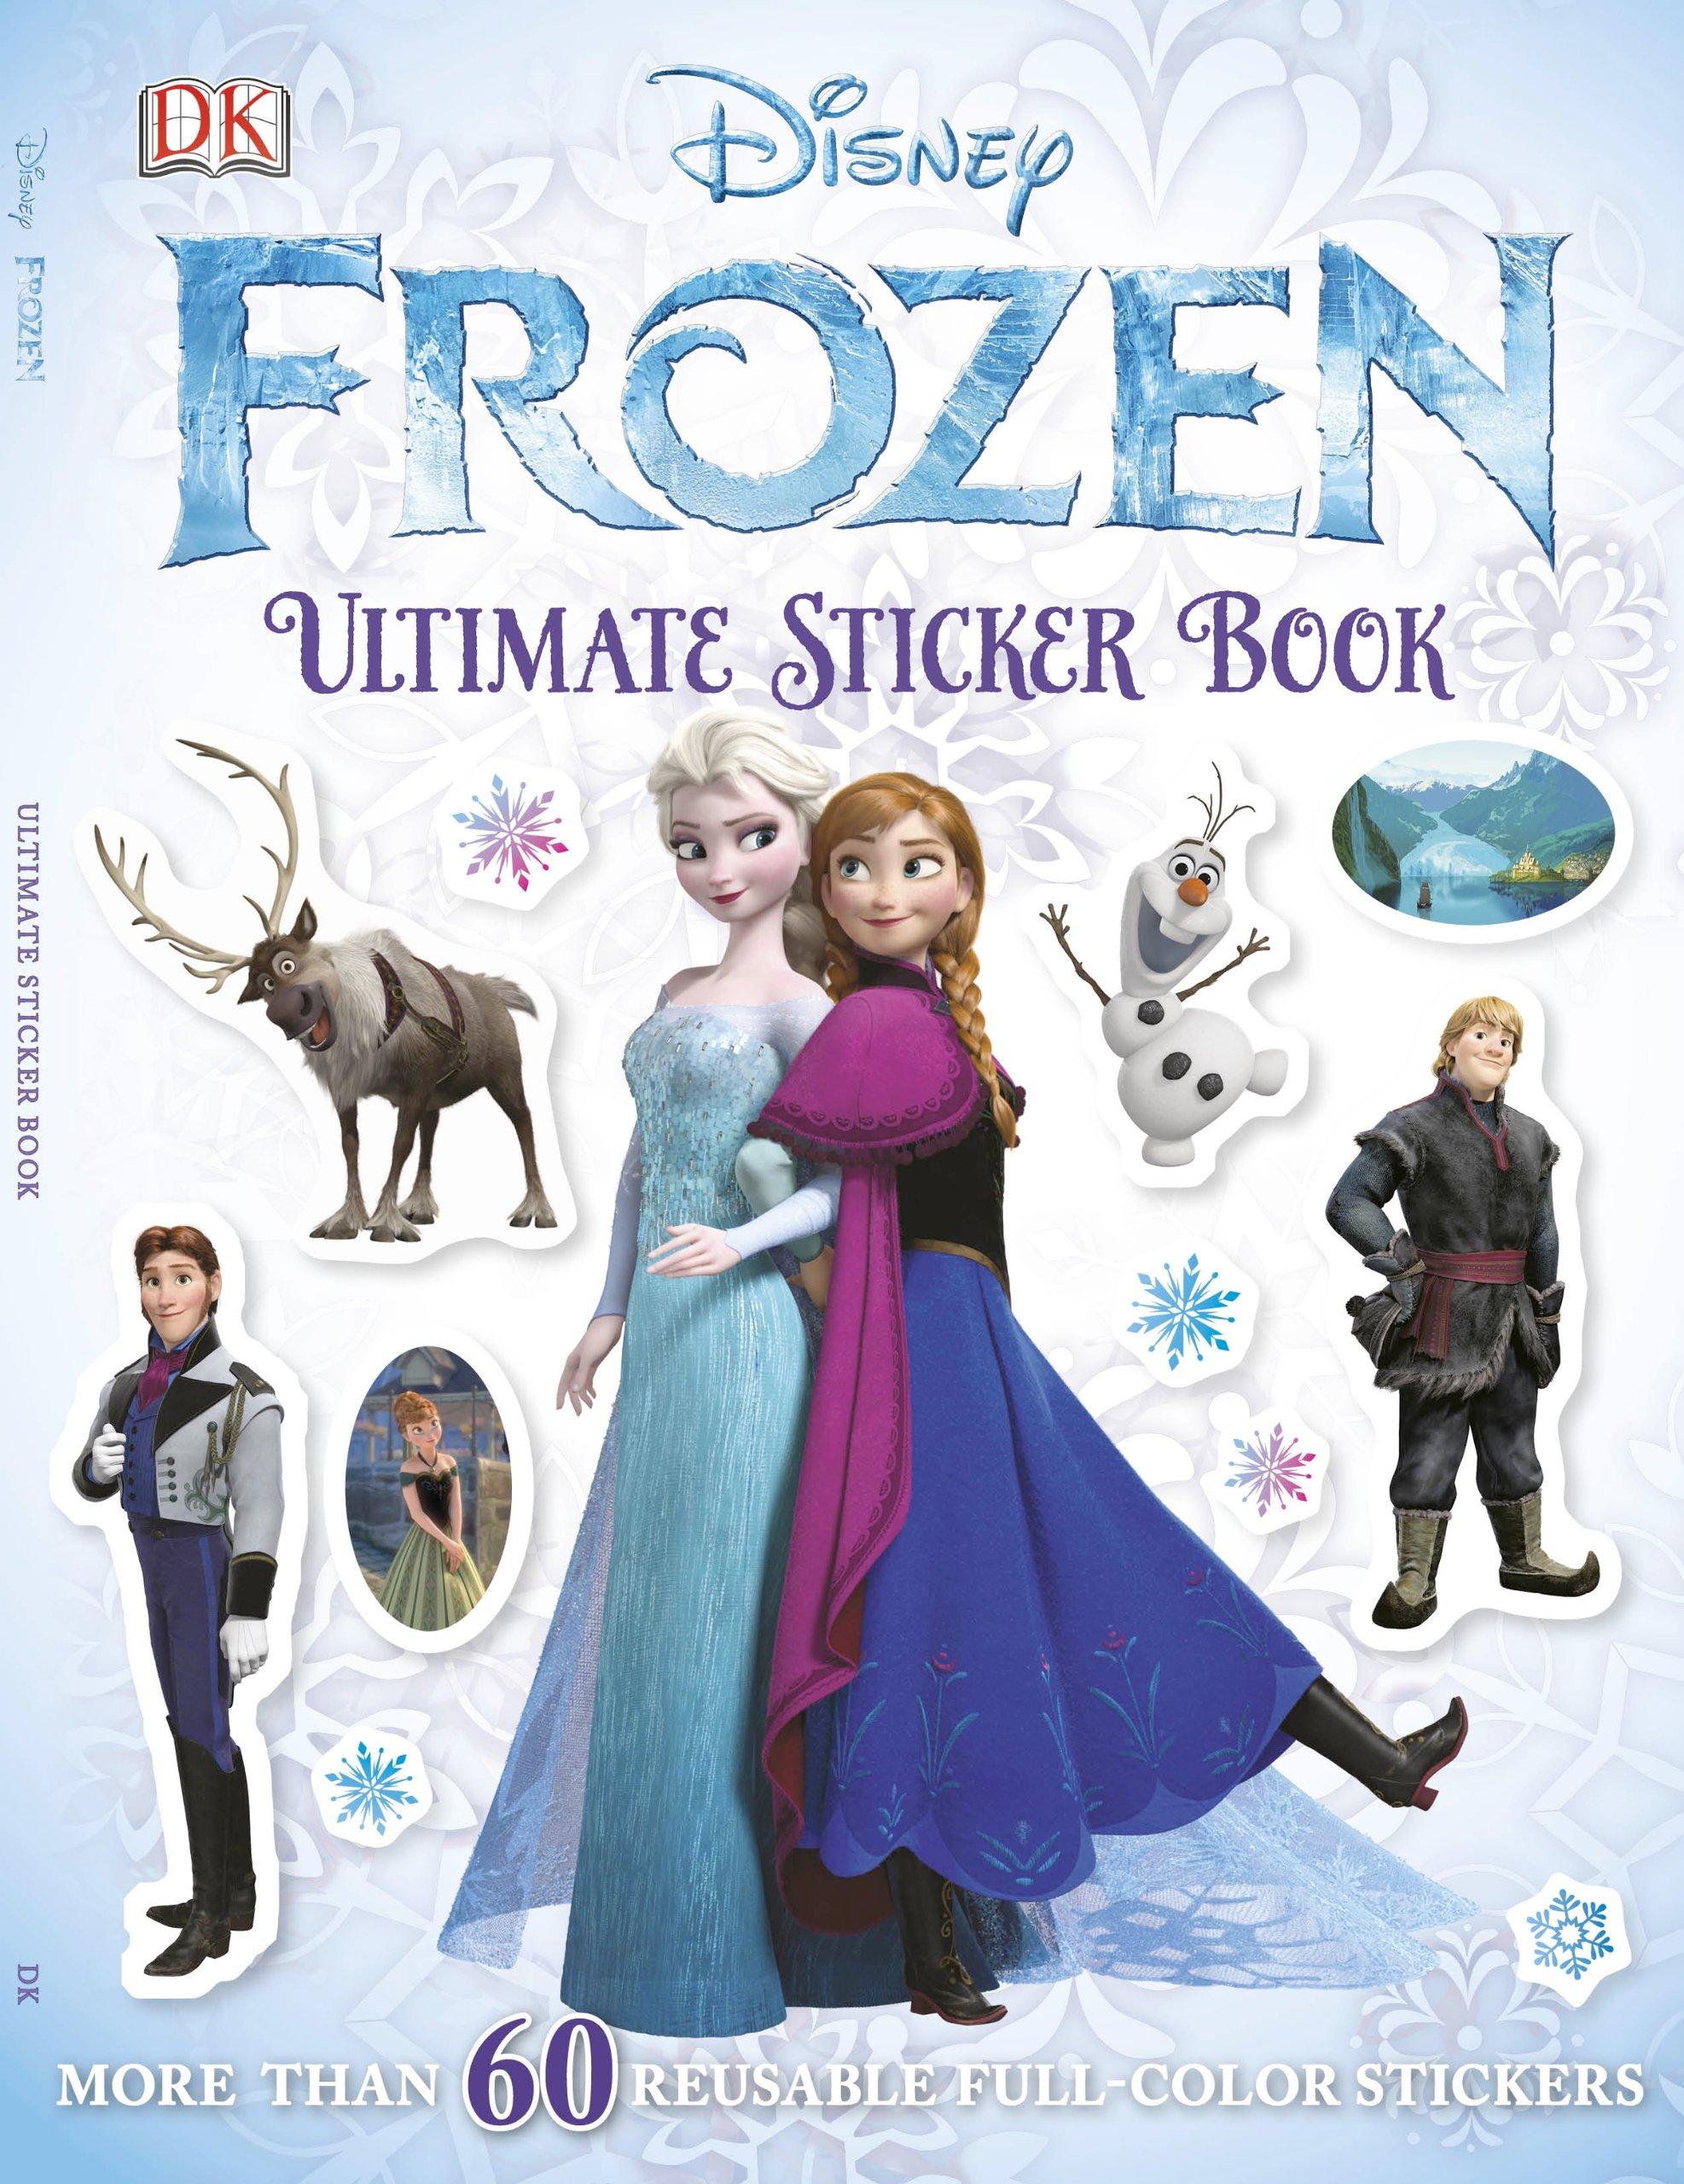 Olaf's Sticker Book with Anna and Elsa from Frozen